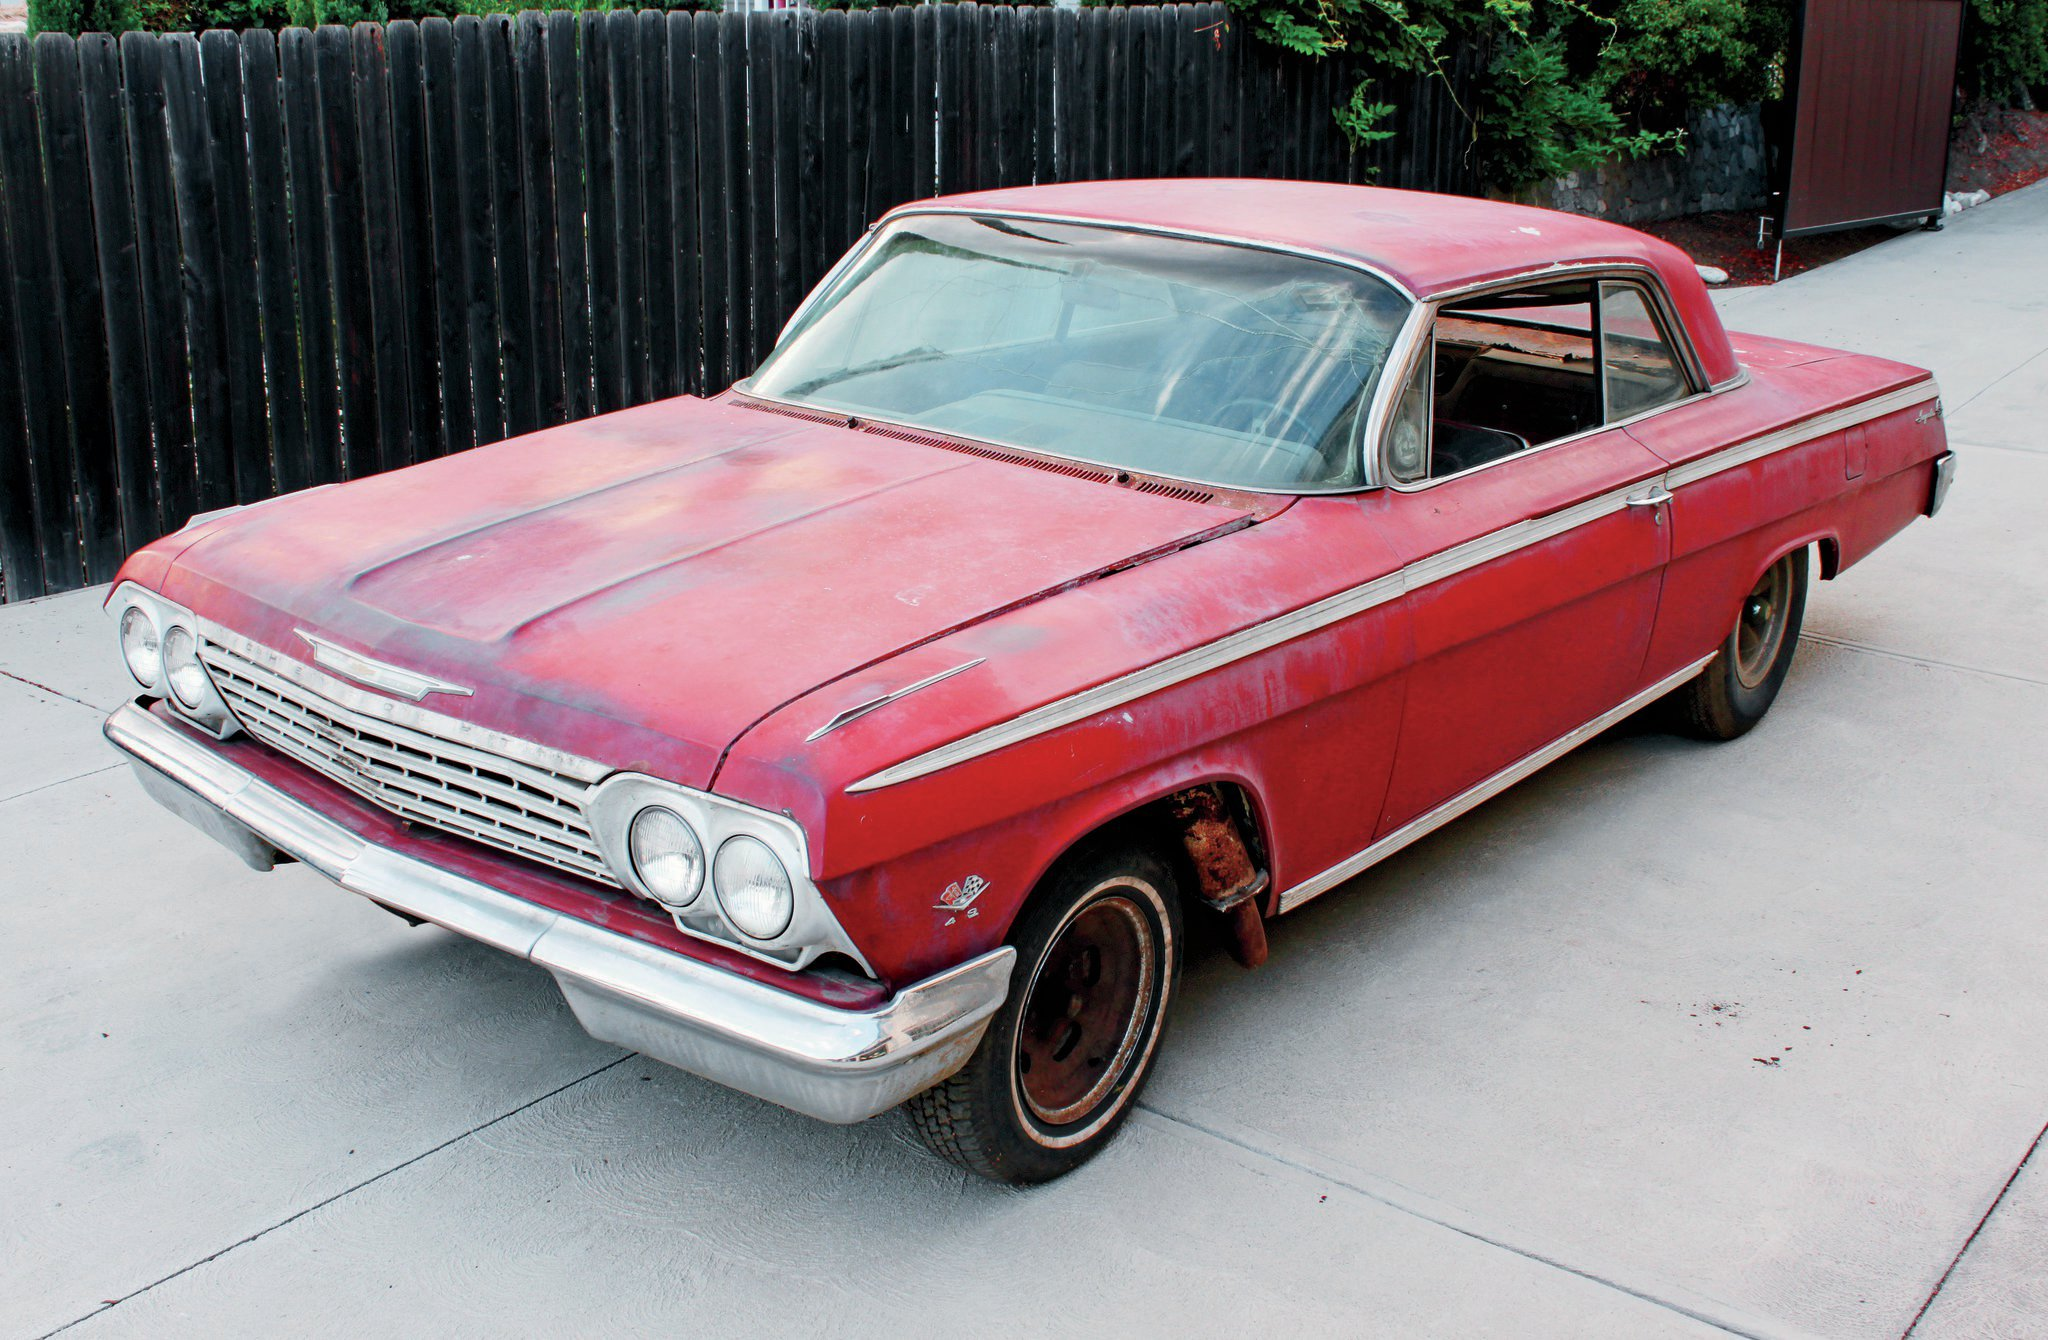 This Impala SS is a real time capsule, parked for more than 30 years still wearing it's '60s speed equipment. You can see where the original Ermine White paint is coming through the red repaint, done back in the day to disguise the winning street car.